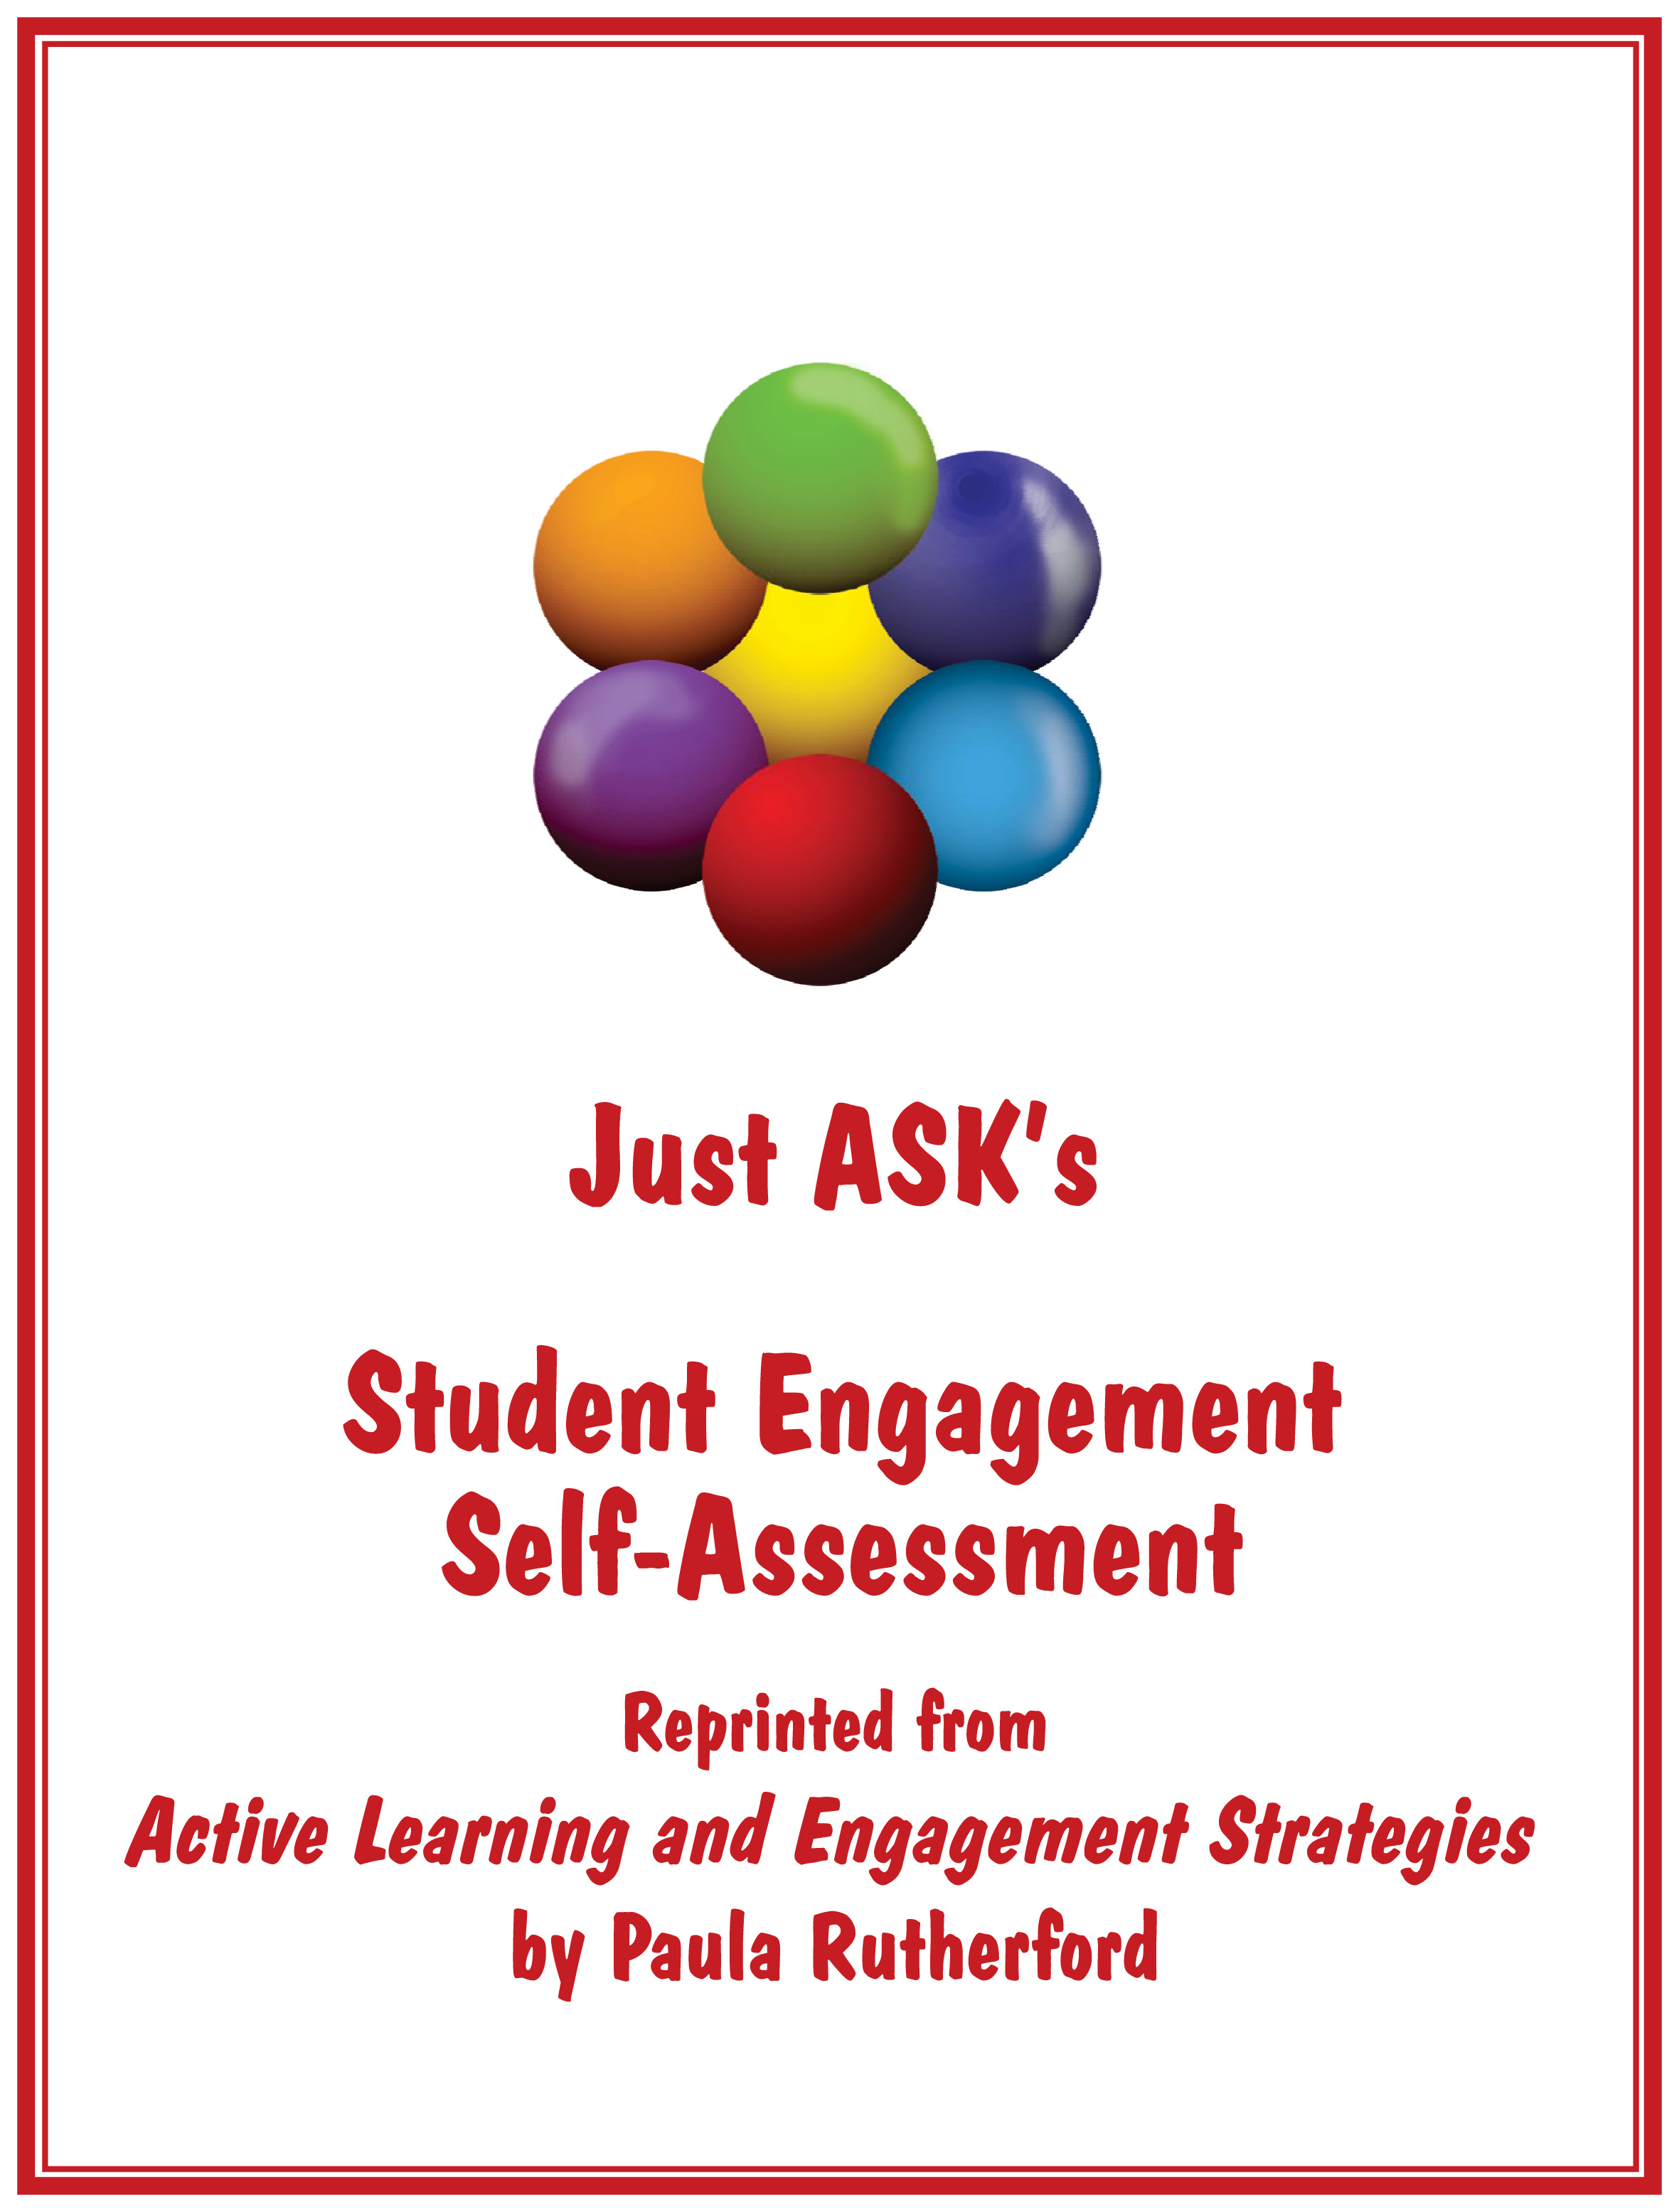 Student Engagement Self-Assessment